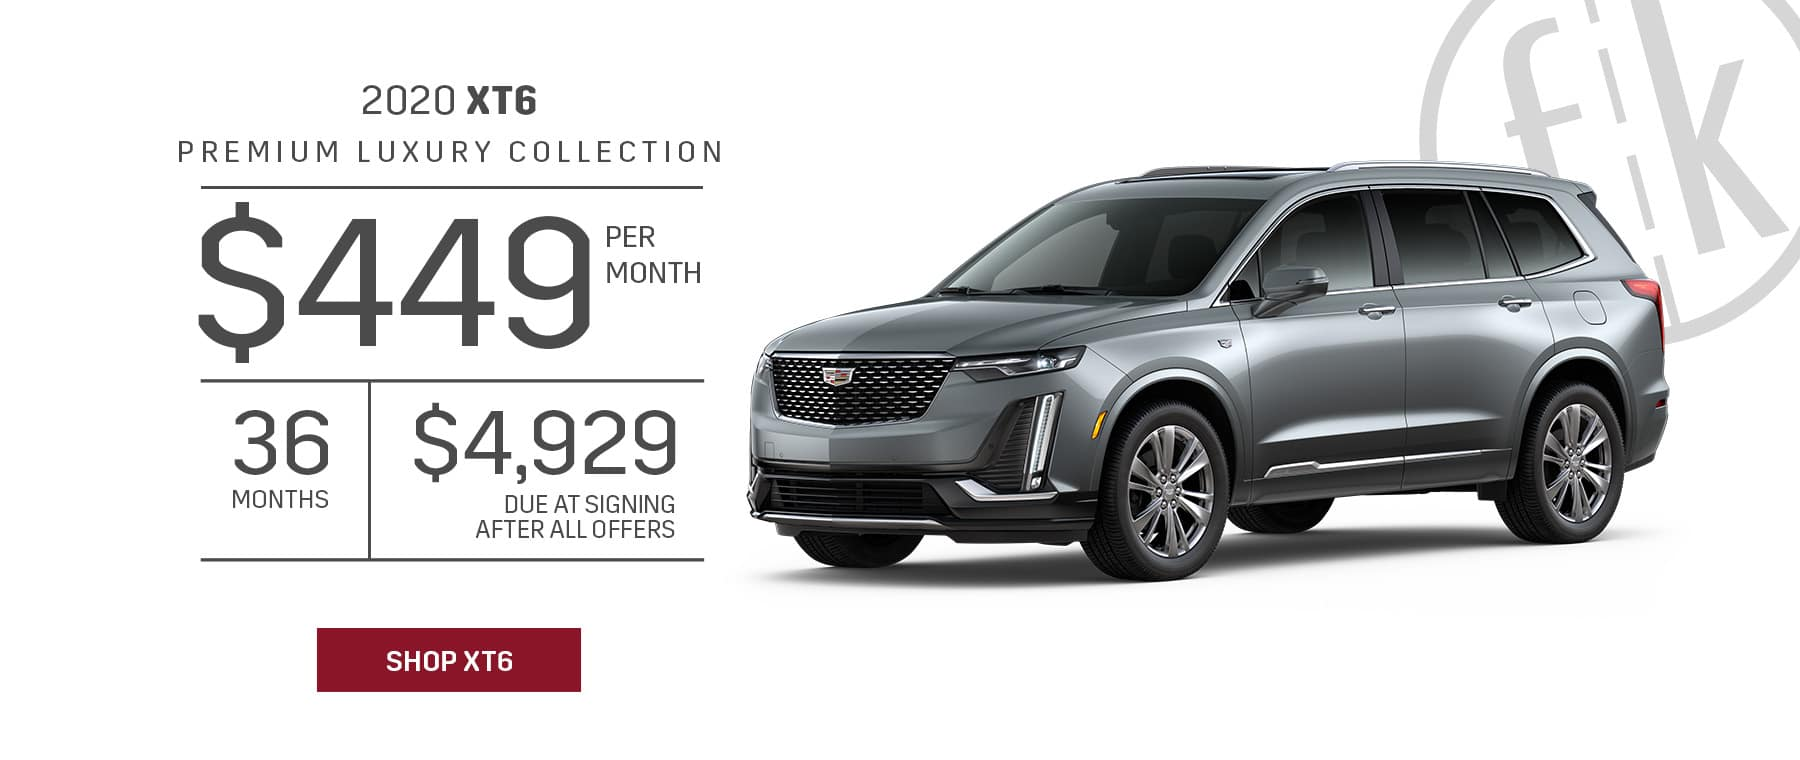 2020 XT6 1SC Premium LUX FWD $449/mo for 36 mos. with $4,929 DAS